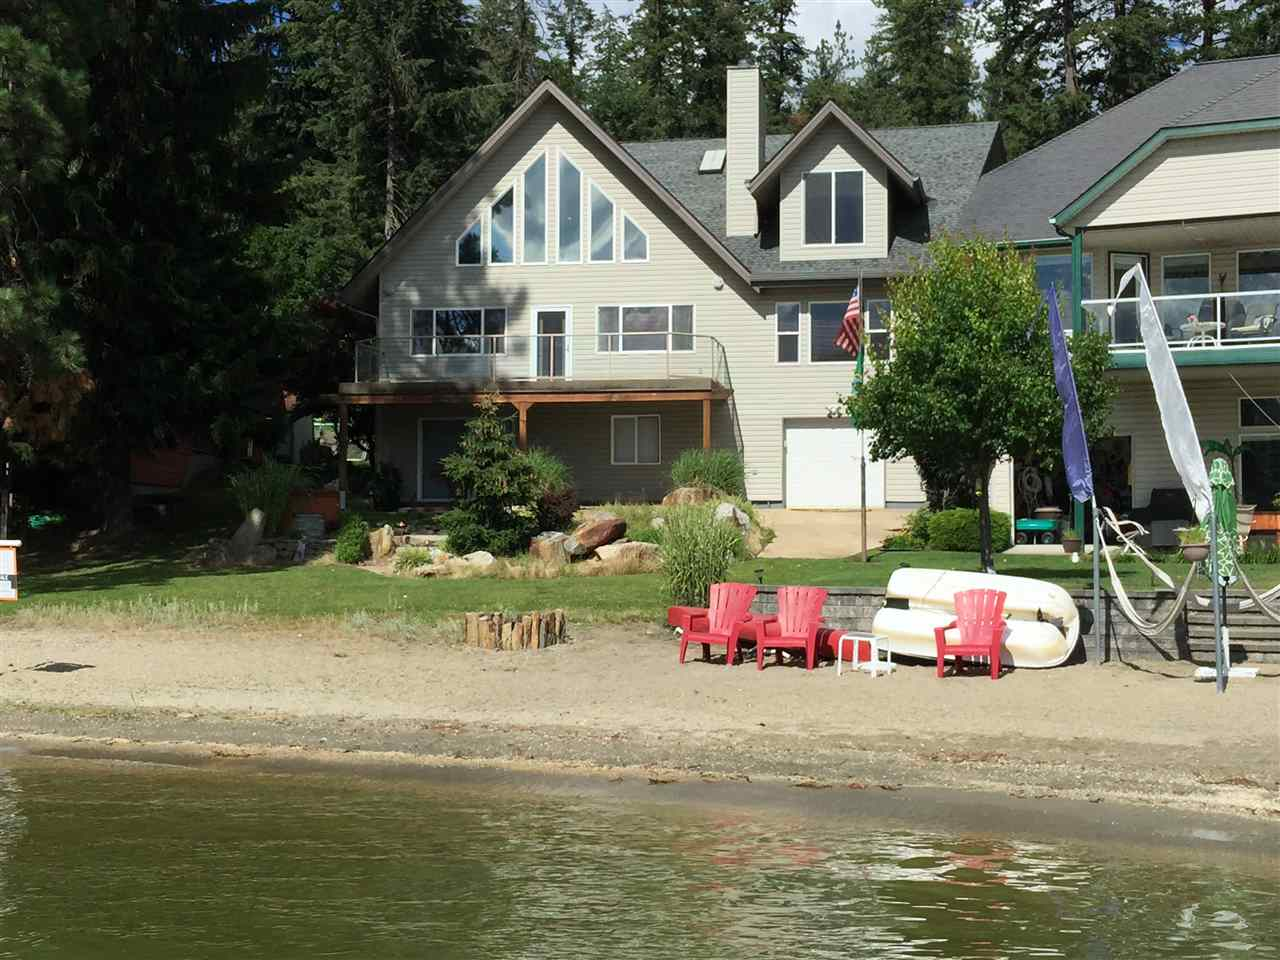 Single Family Home for Sale at 12907 N North Park Street 12907 N North Park Street Newman Lake, Washington 99025 United States